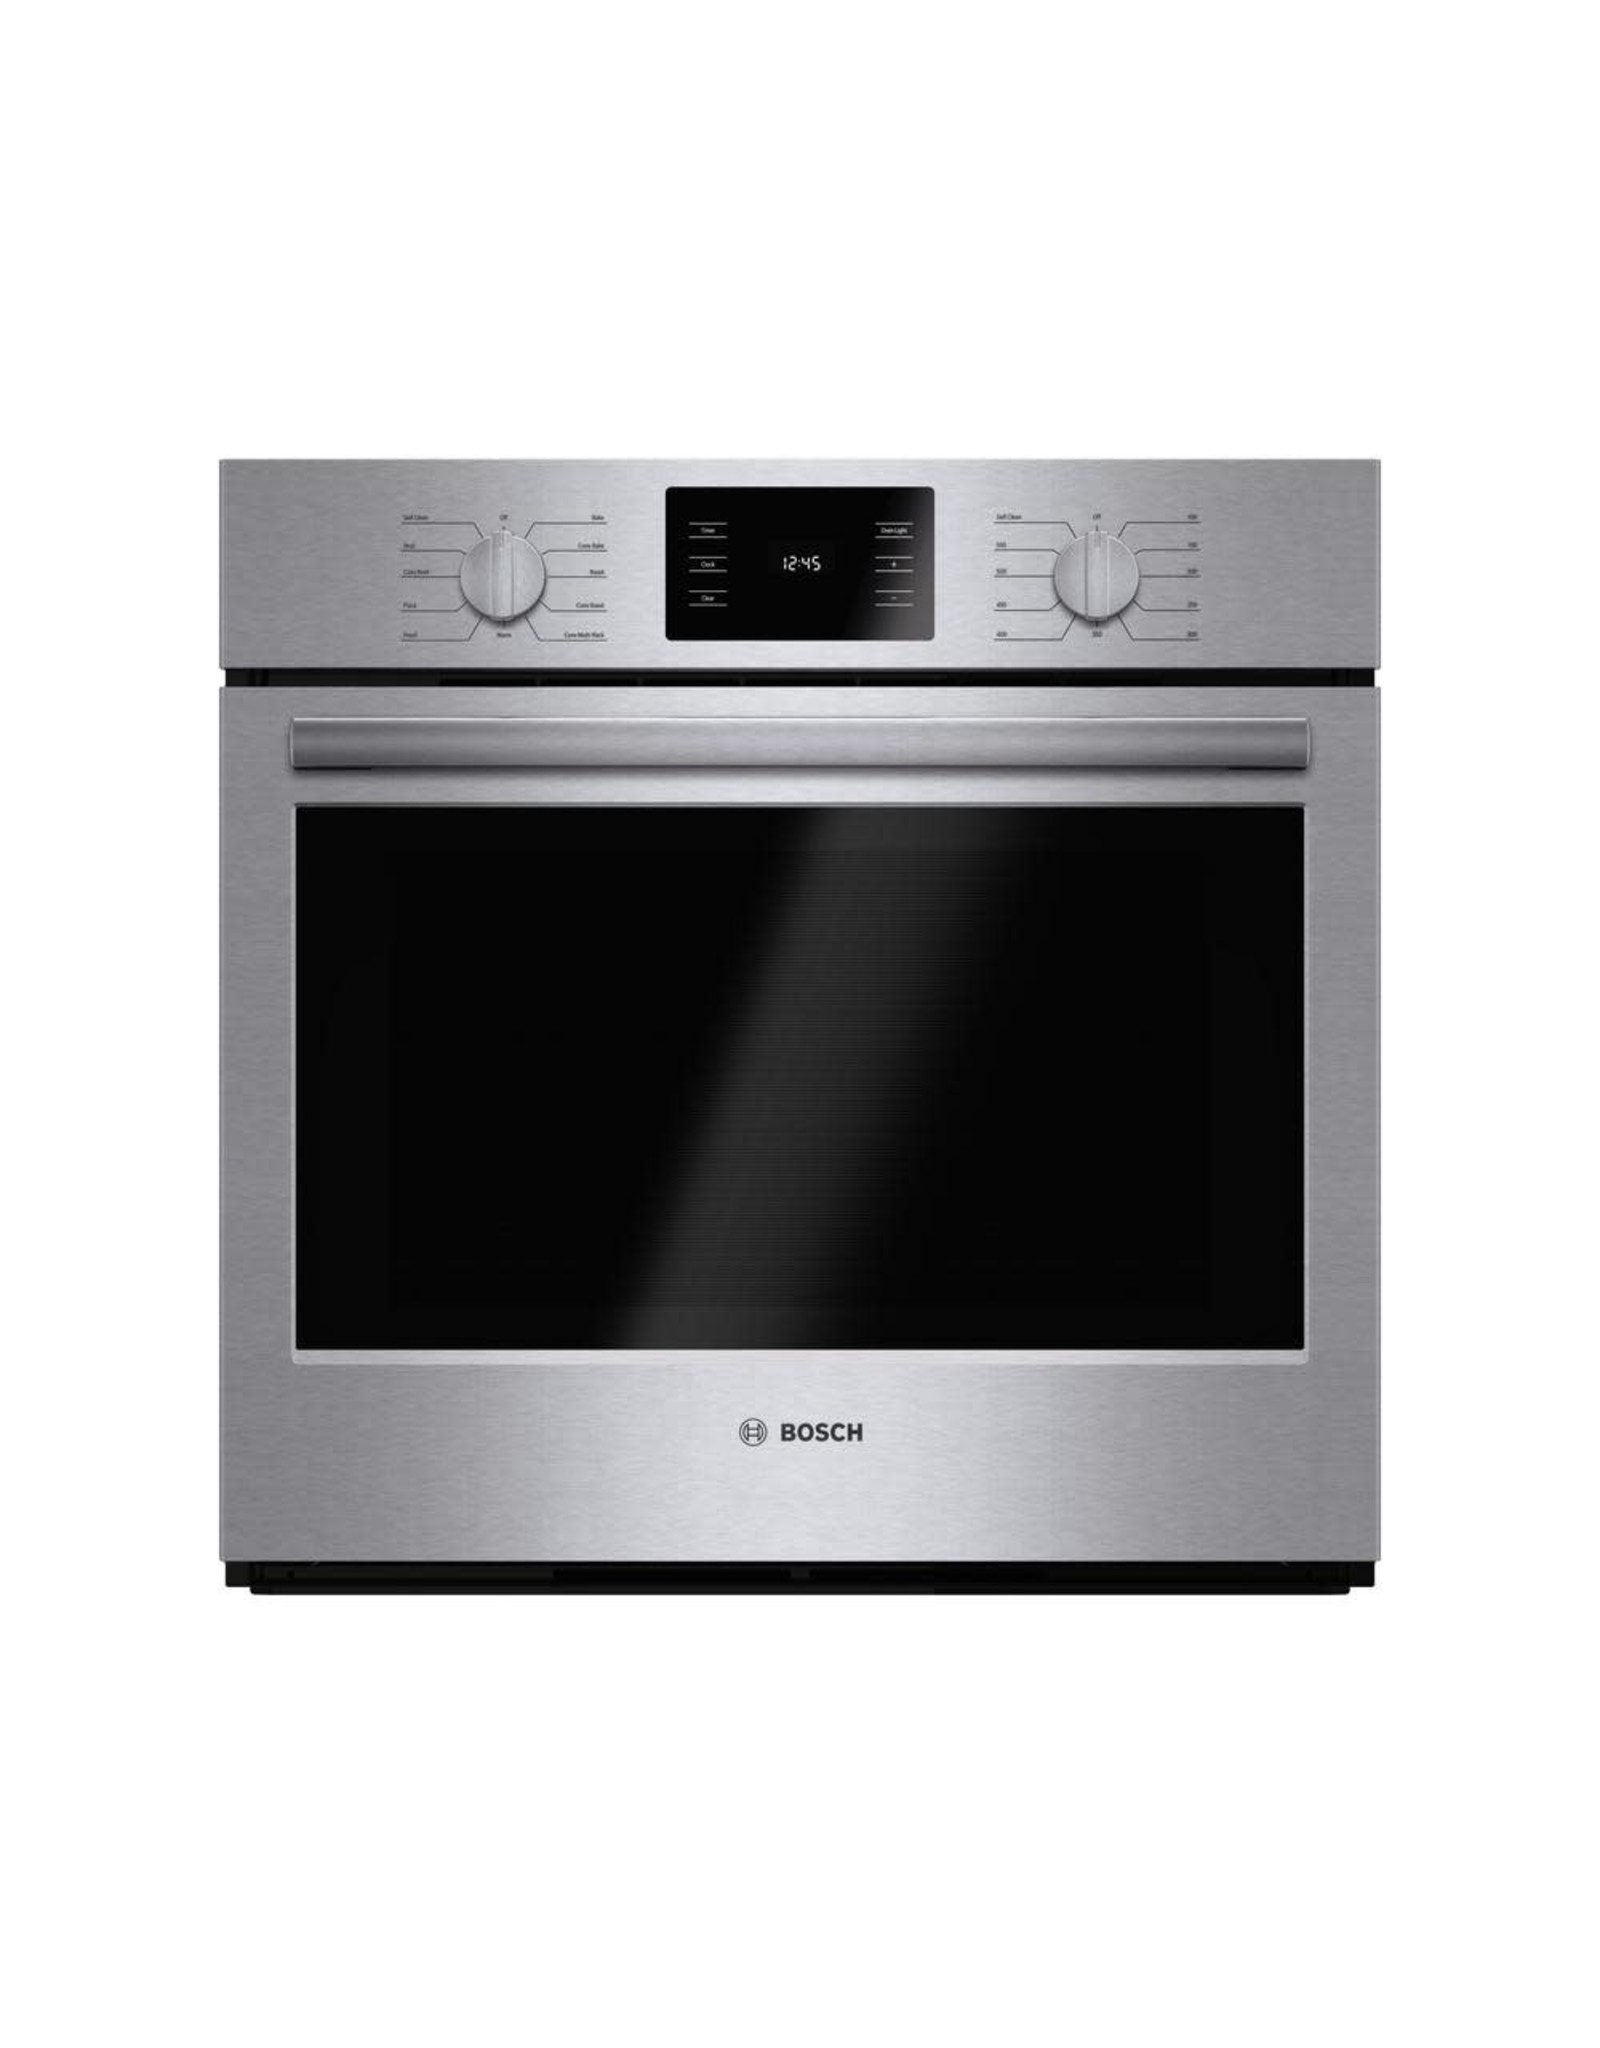 BOSCH HBL5451UC 500 Series 30 in. Single Electric Wall Oven with European Convection and Self Cleaning in Stainless Steel